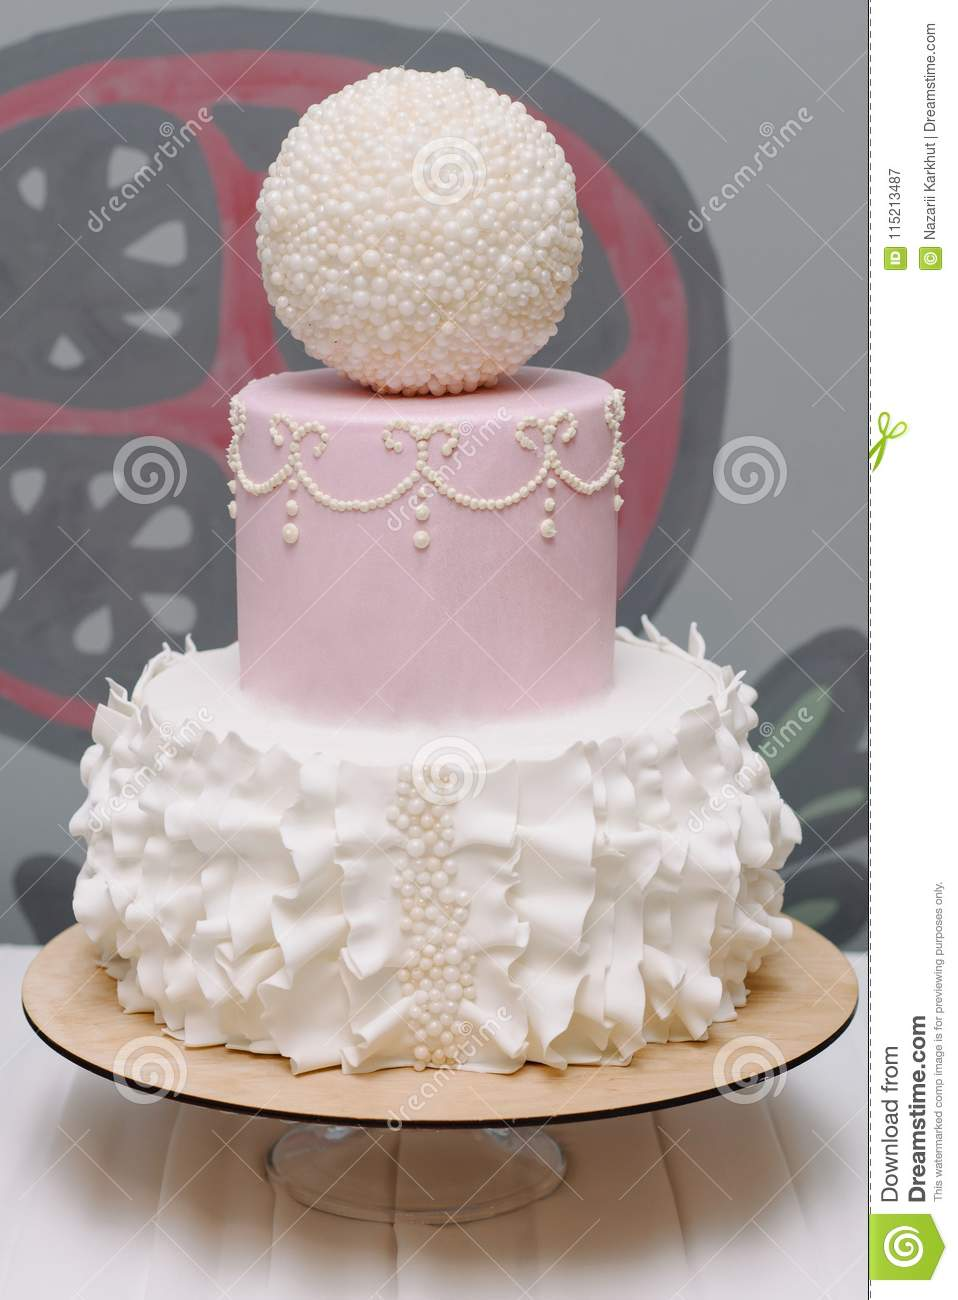 Peachy Very Nice Birthday Cake For Girl Stock Image Image Of Food Funny Birthday Cards Online Sheoxdamsfinfo